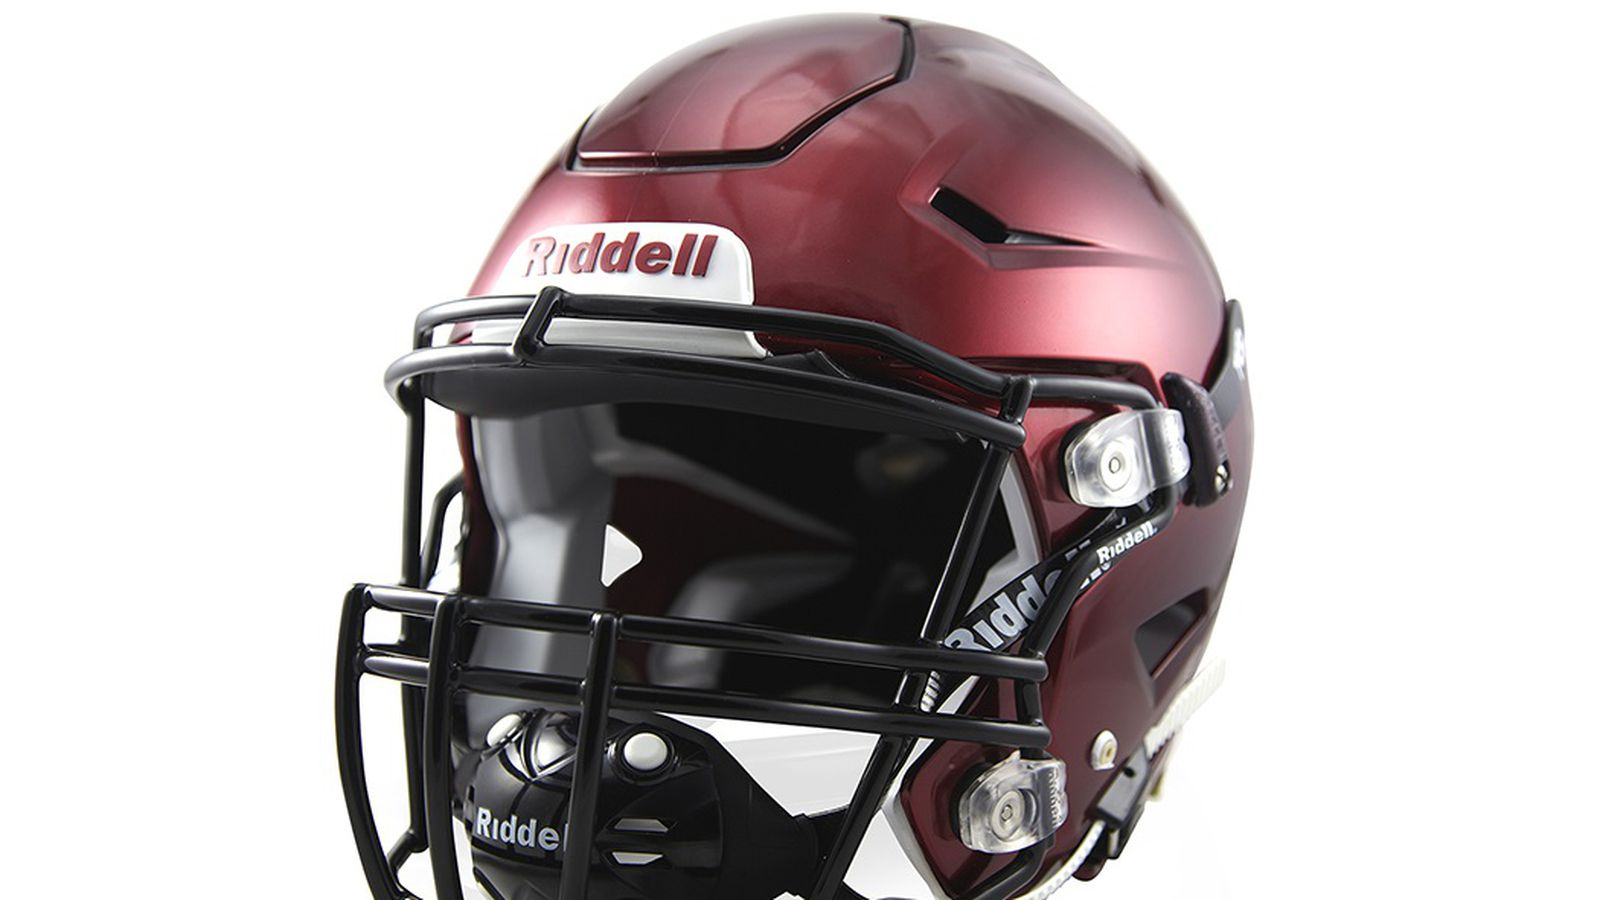 New Riddell SpeedFlex football